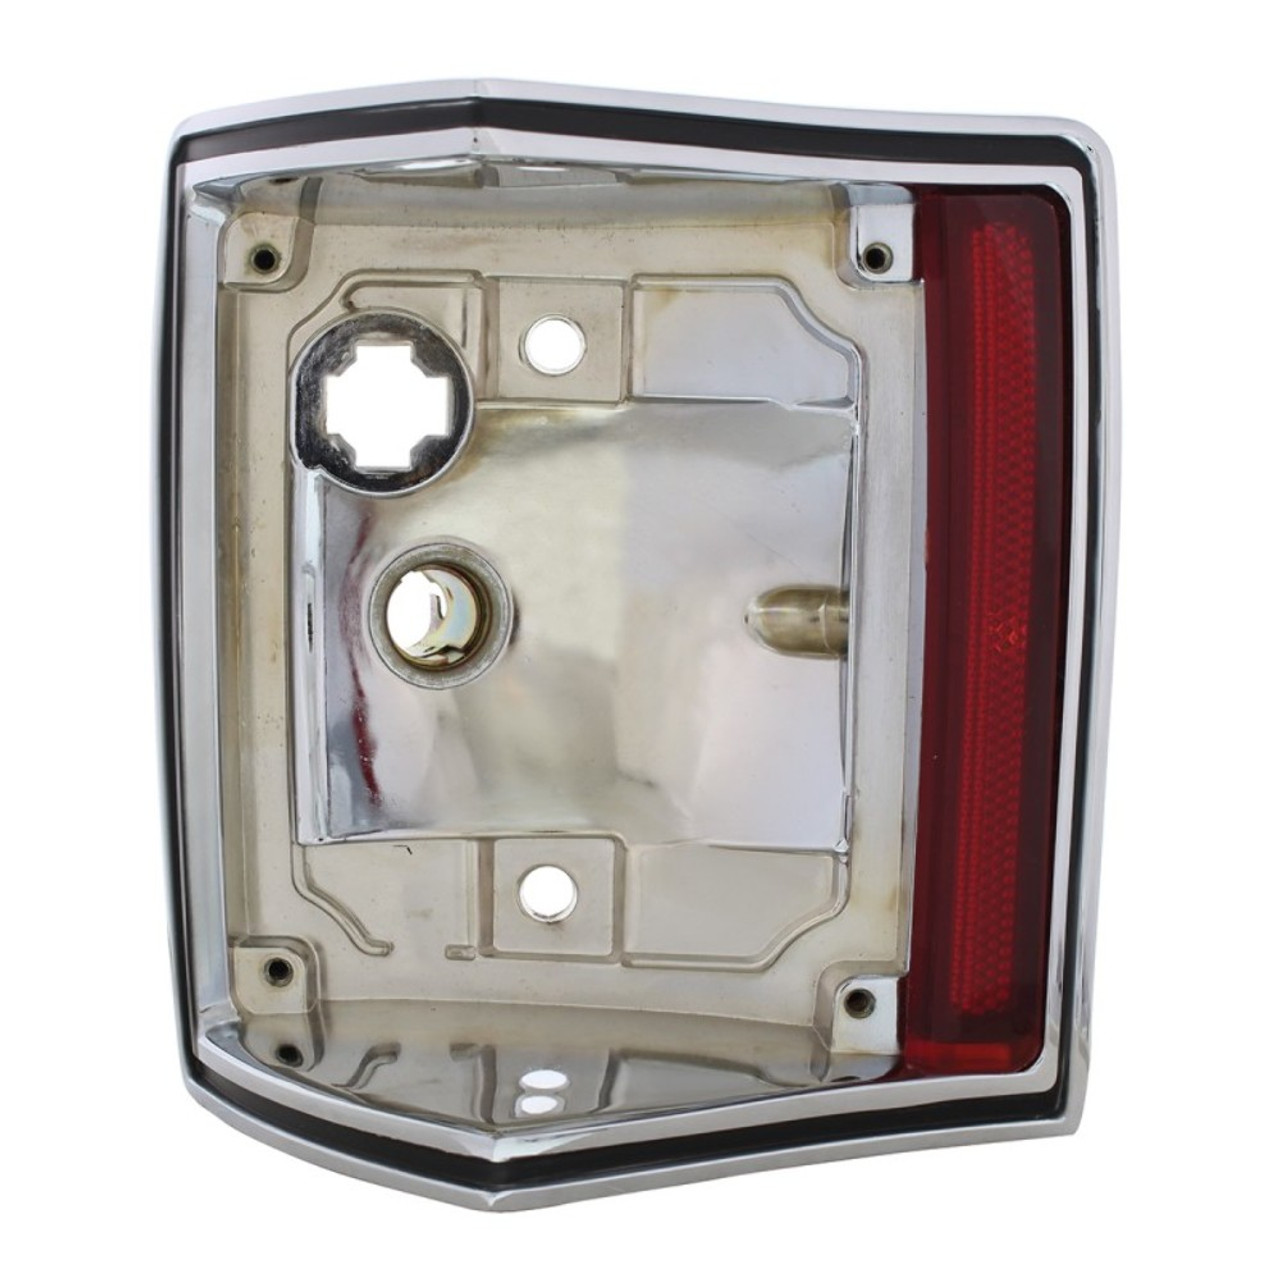 1970 El Camino Led Tail Lights 1970 72 El Camino Station Wagon Chrome Tail Light Housing Left Driver Side